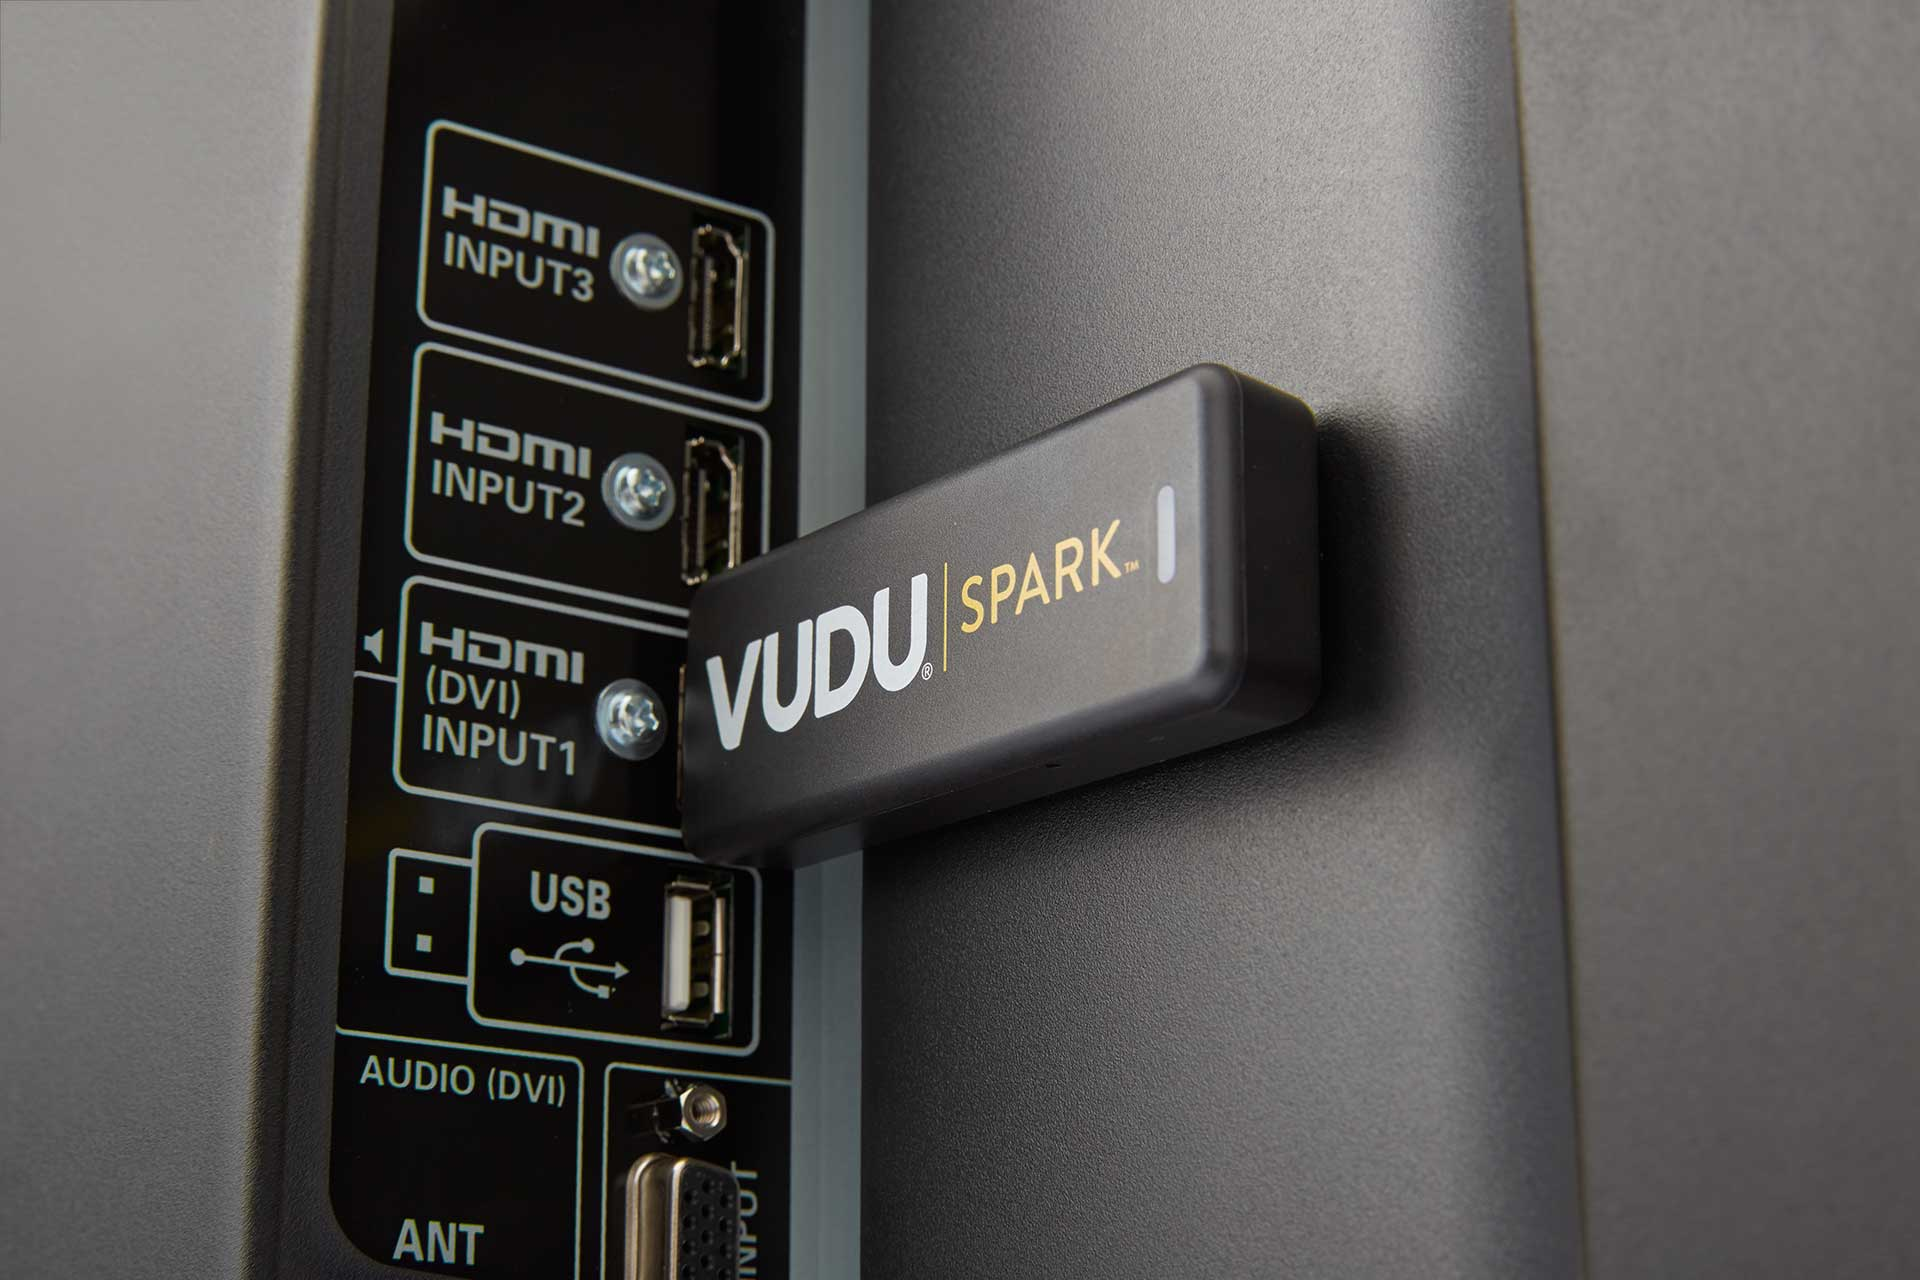 VUDU now selling Spark HMDI/USB Streaming Stick